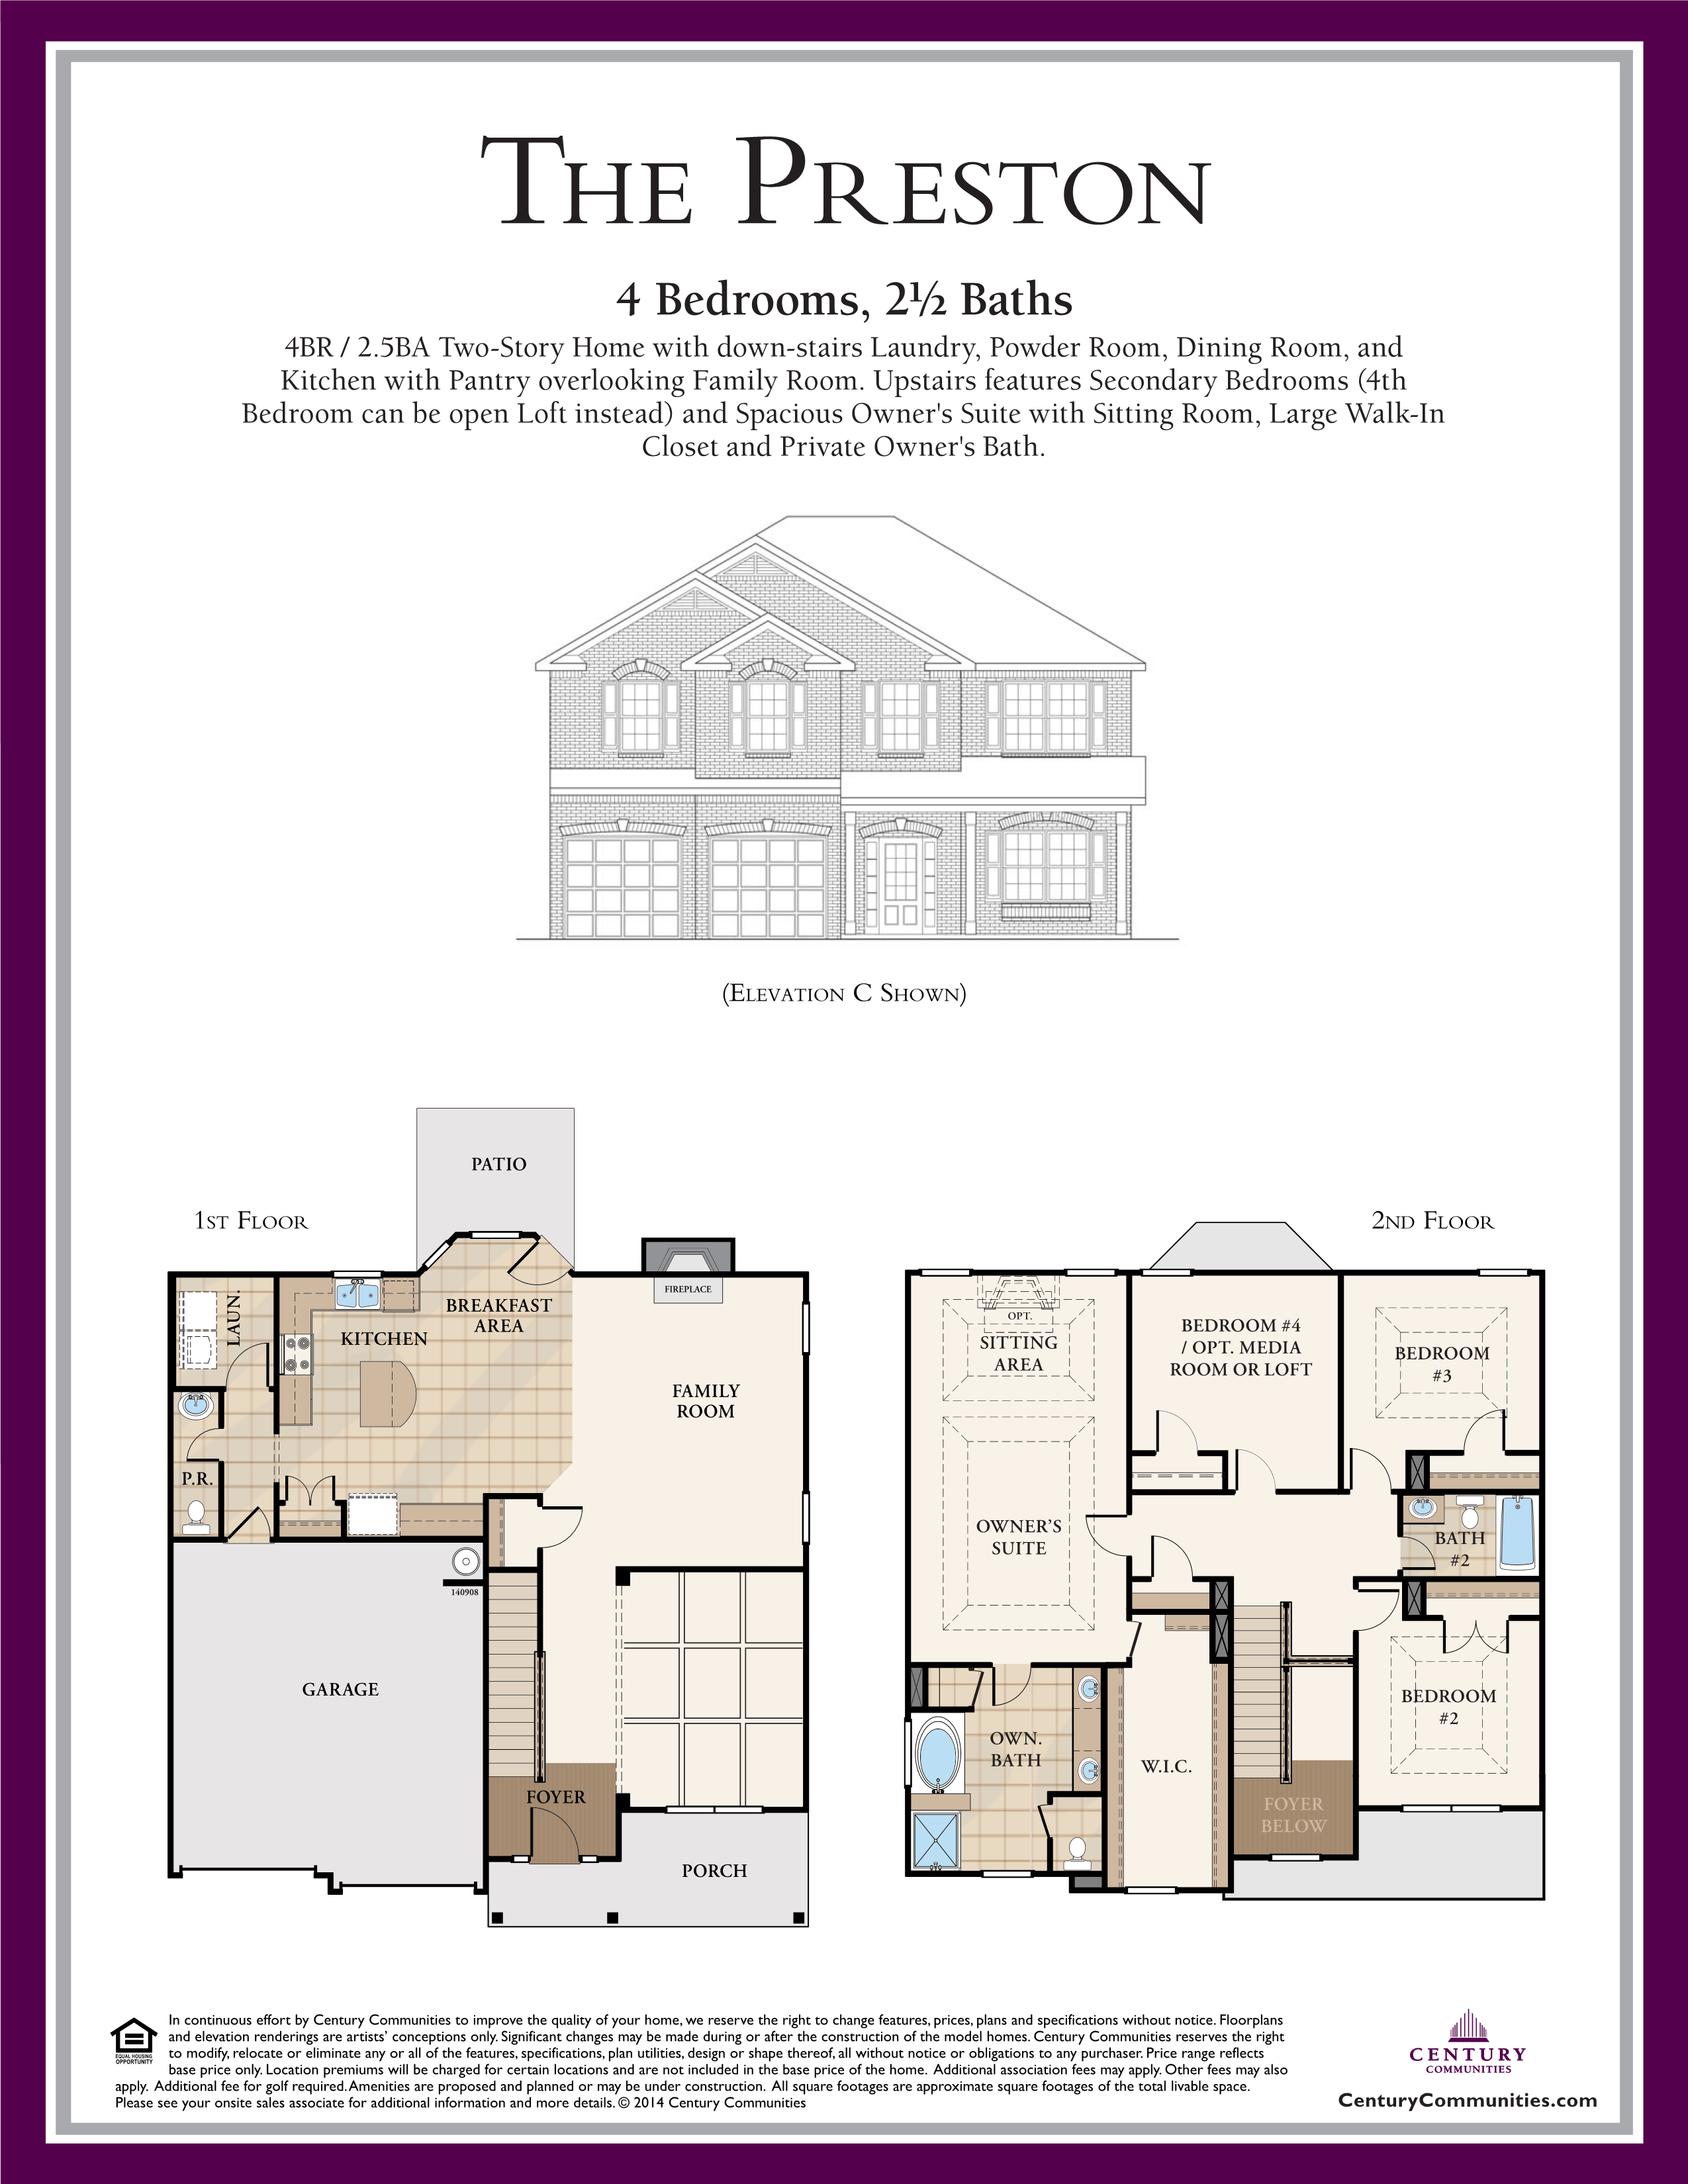 The preston floor plan is a 4br 2 5ba two story home with down